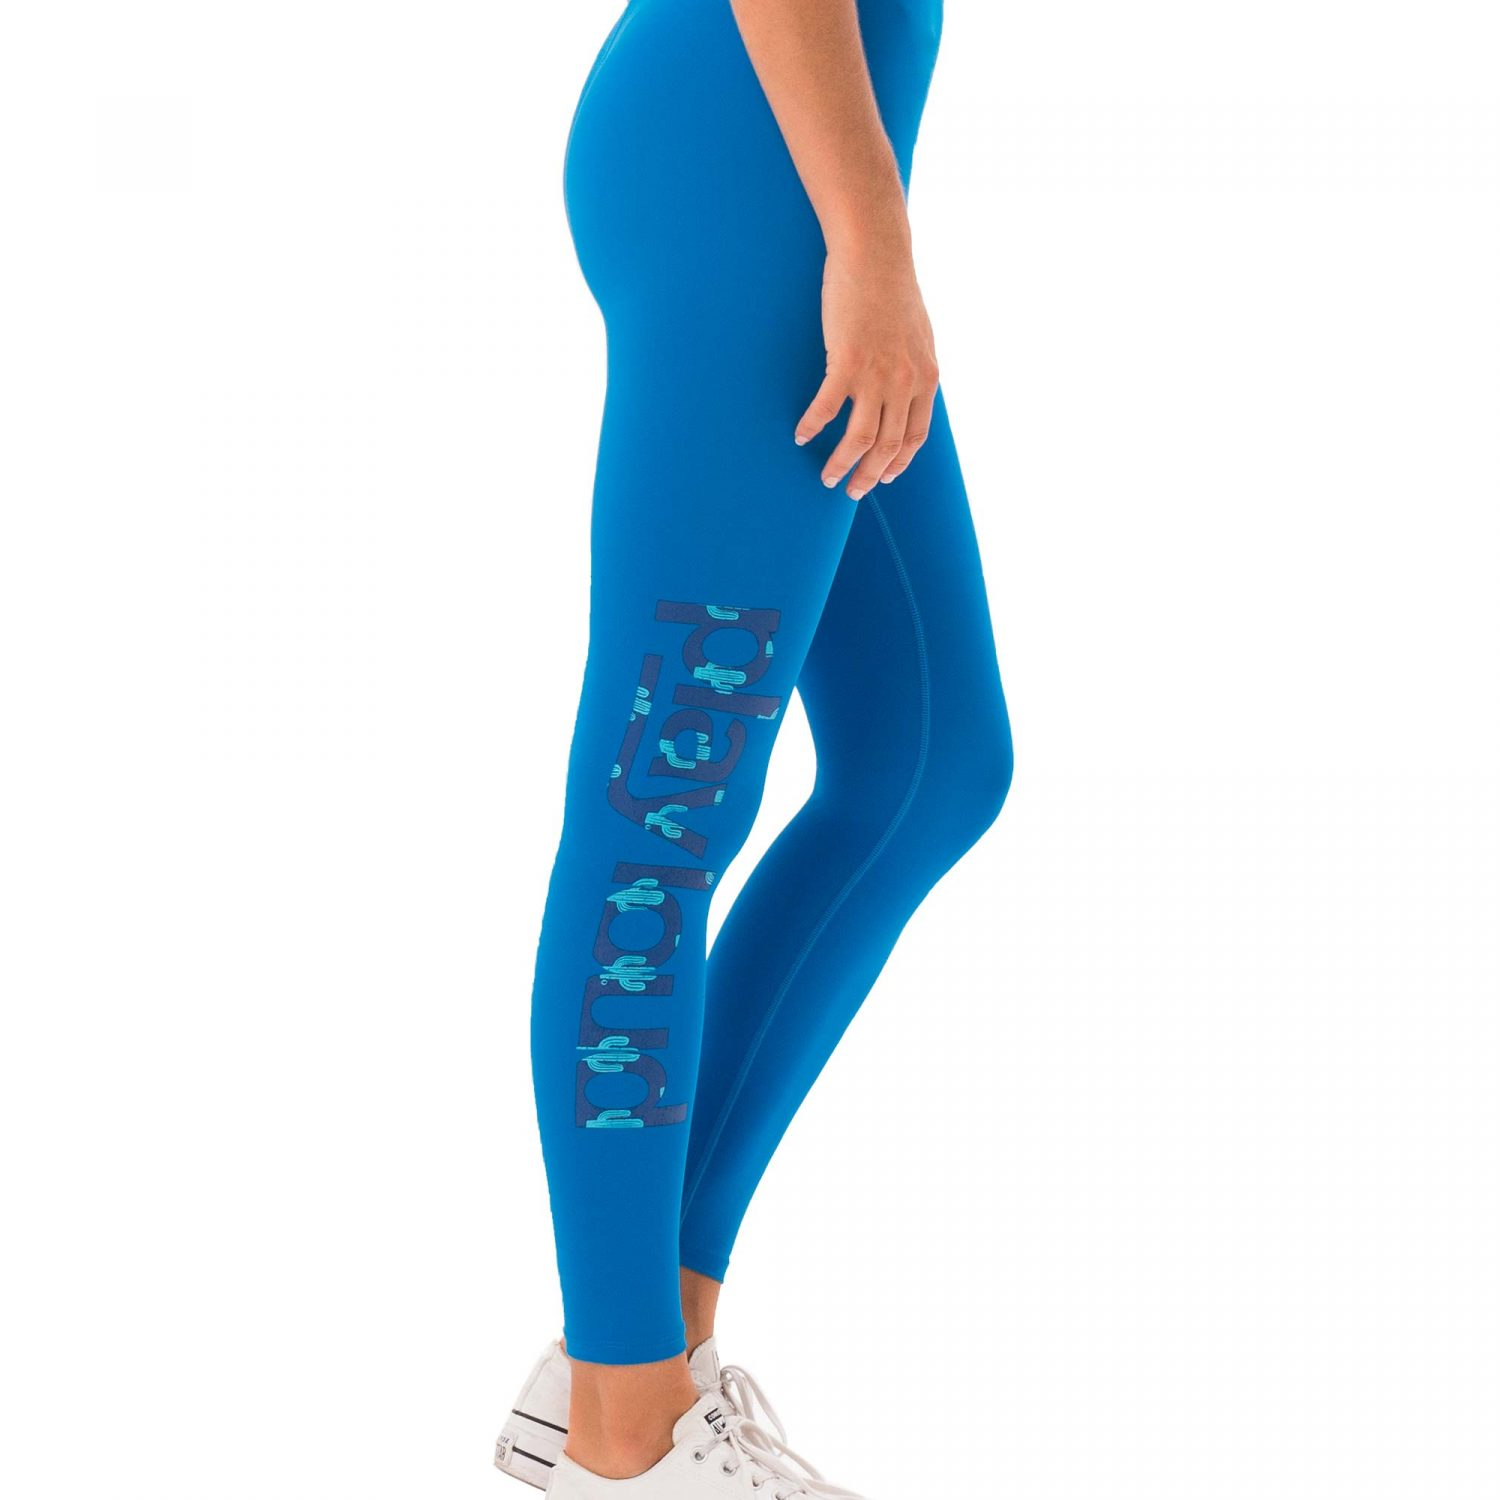 OLTDSB-PO-ZOOM_Sport_Yoga_Fitness_Leggings_Way back to you